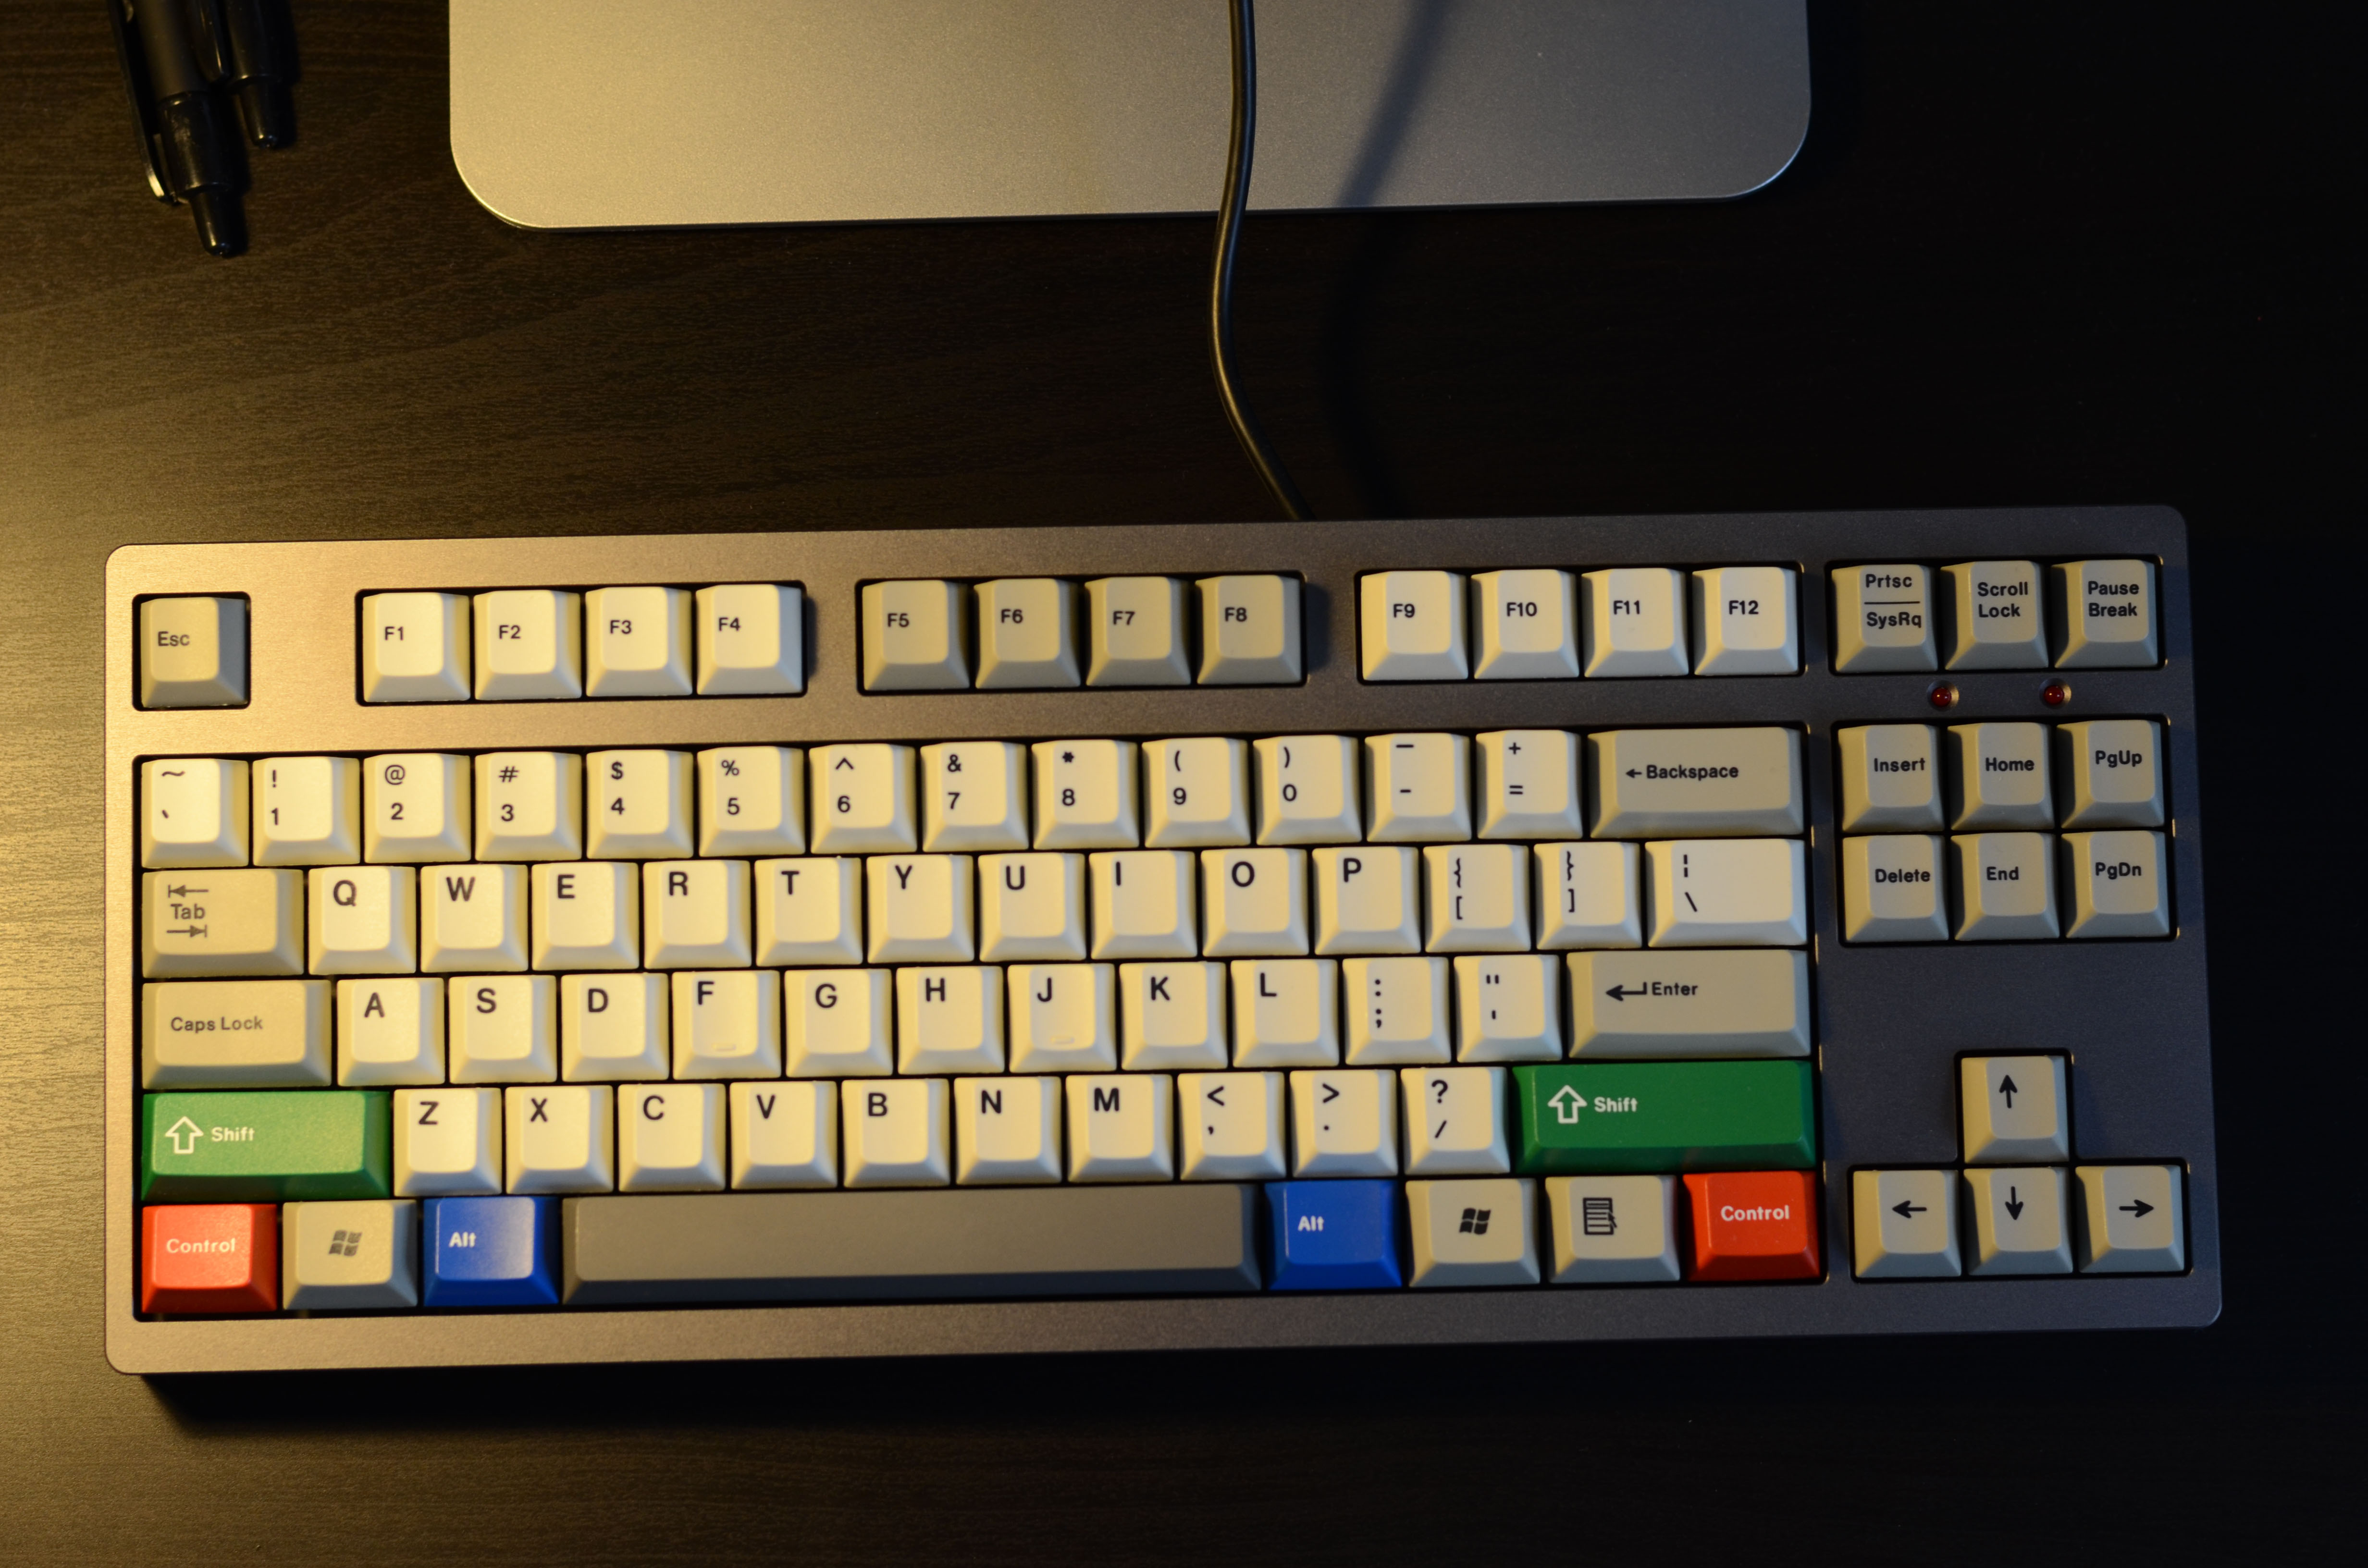 Sexy Mechanical Keyboard Thread | Page 13 | TechPowerUp Forums